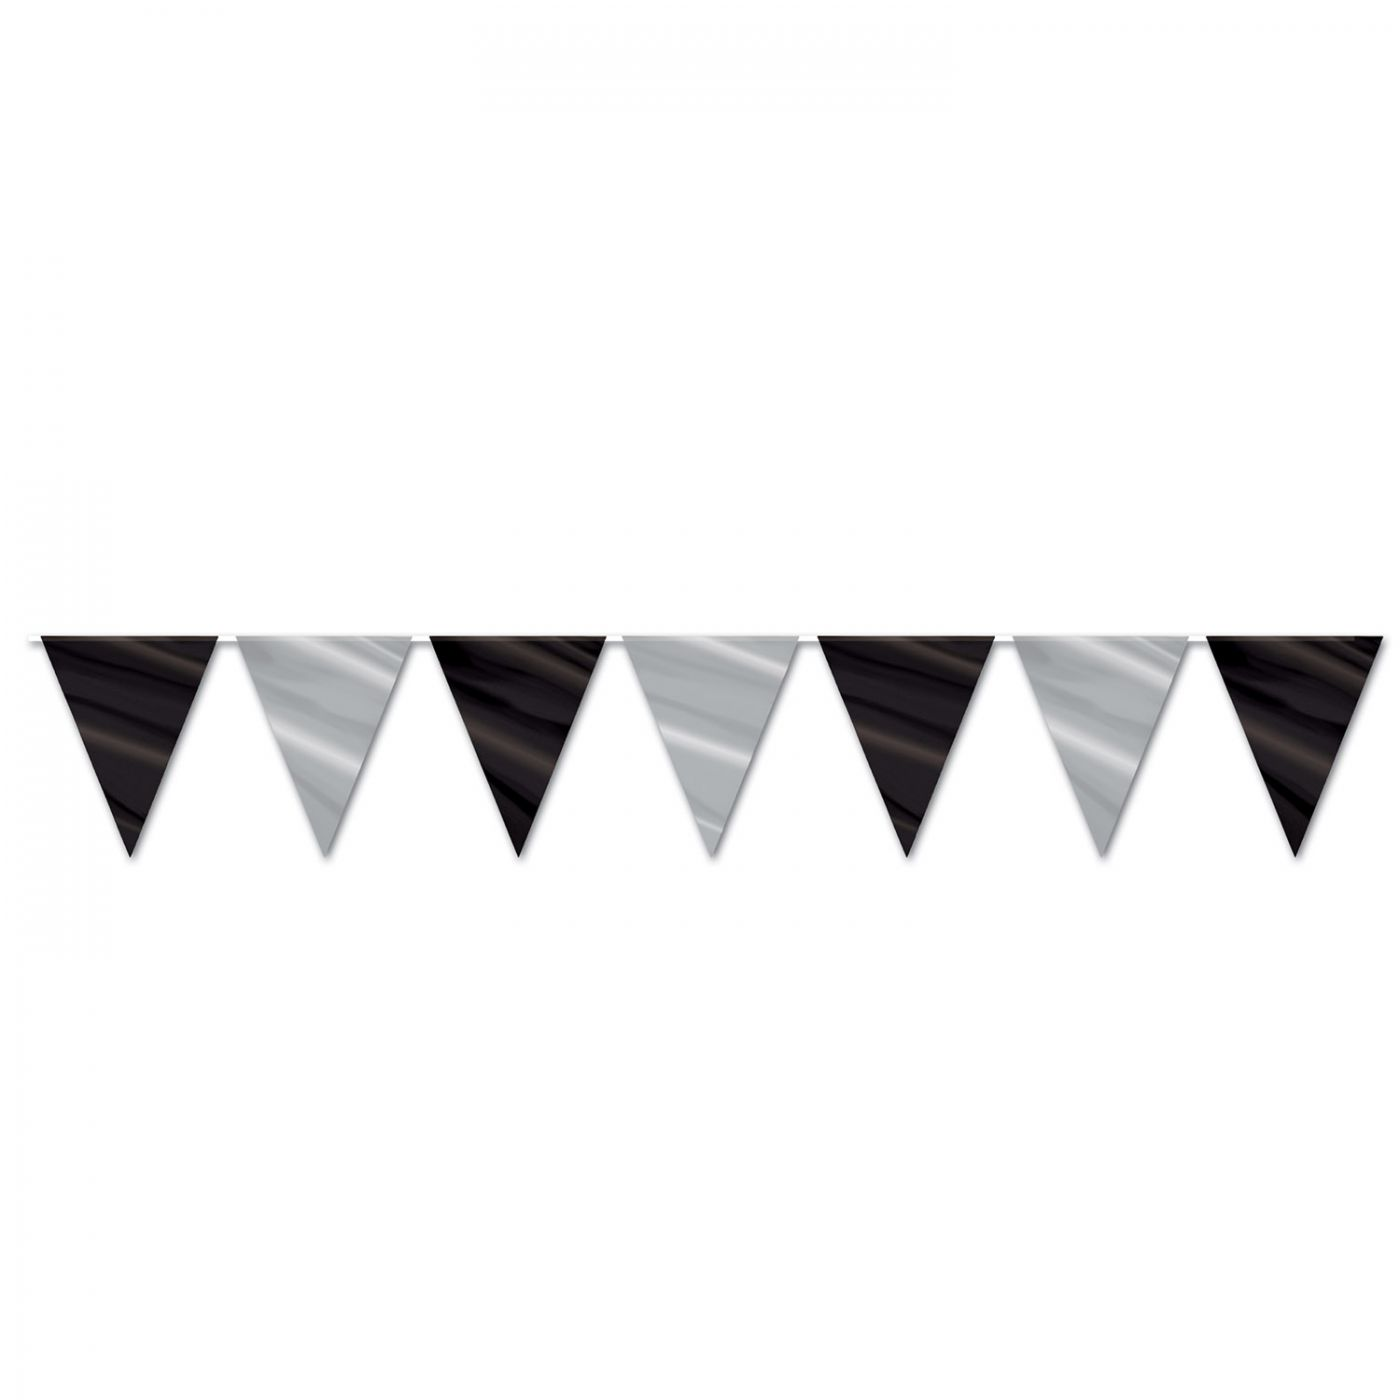 Image of Black & Silver Pennant Banner